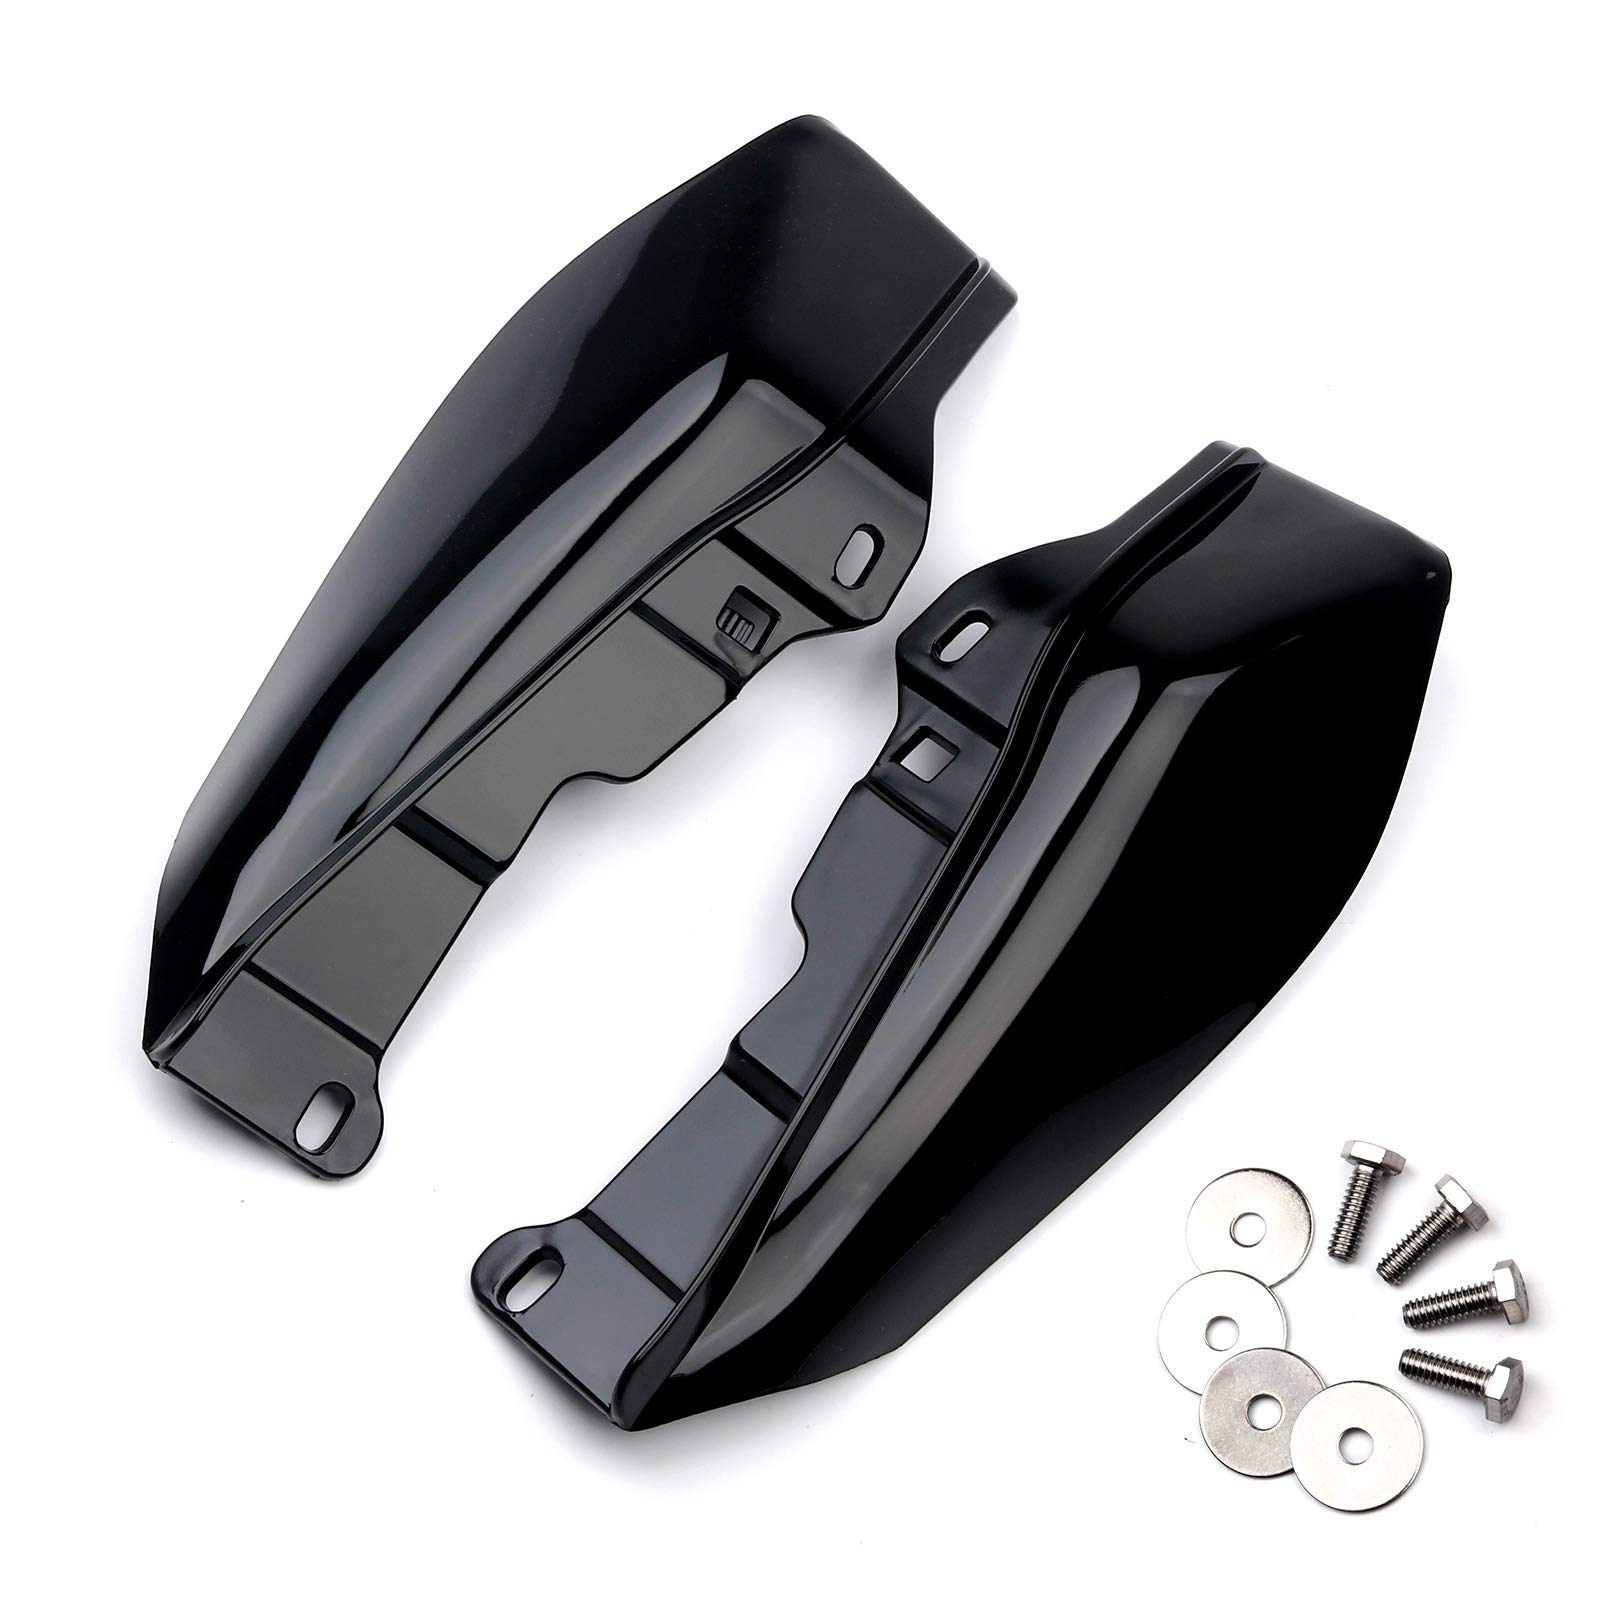 LEAGUE&CO 1 Pair Black Mid-Frame Air Deflector Trim For 2009-2016 Harley Street Glide Tri Electra Road King by LEAGUE&CO